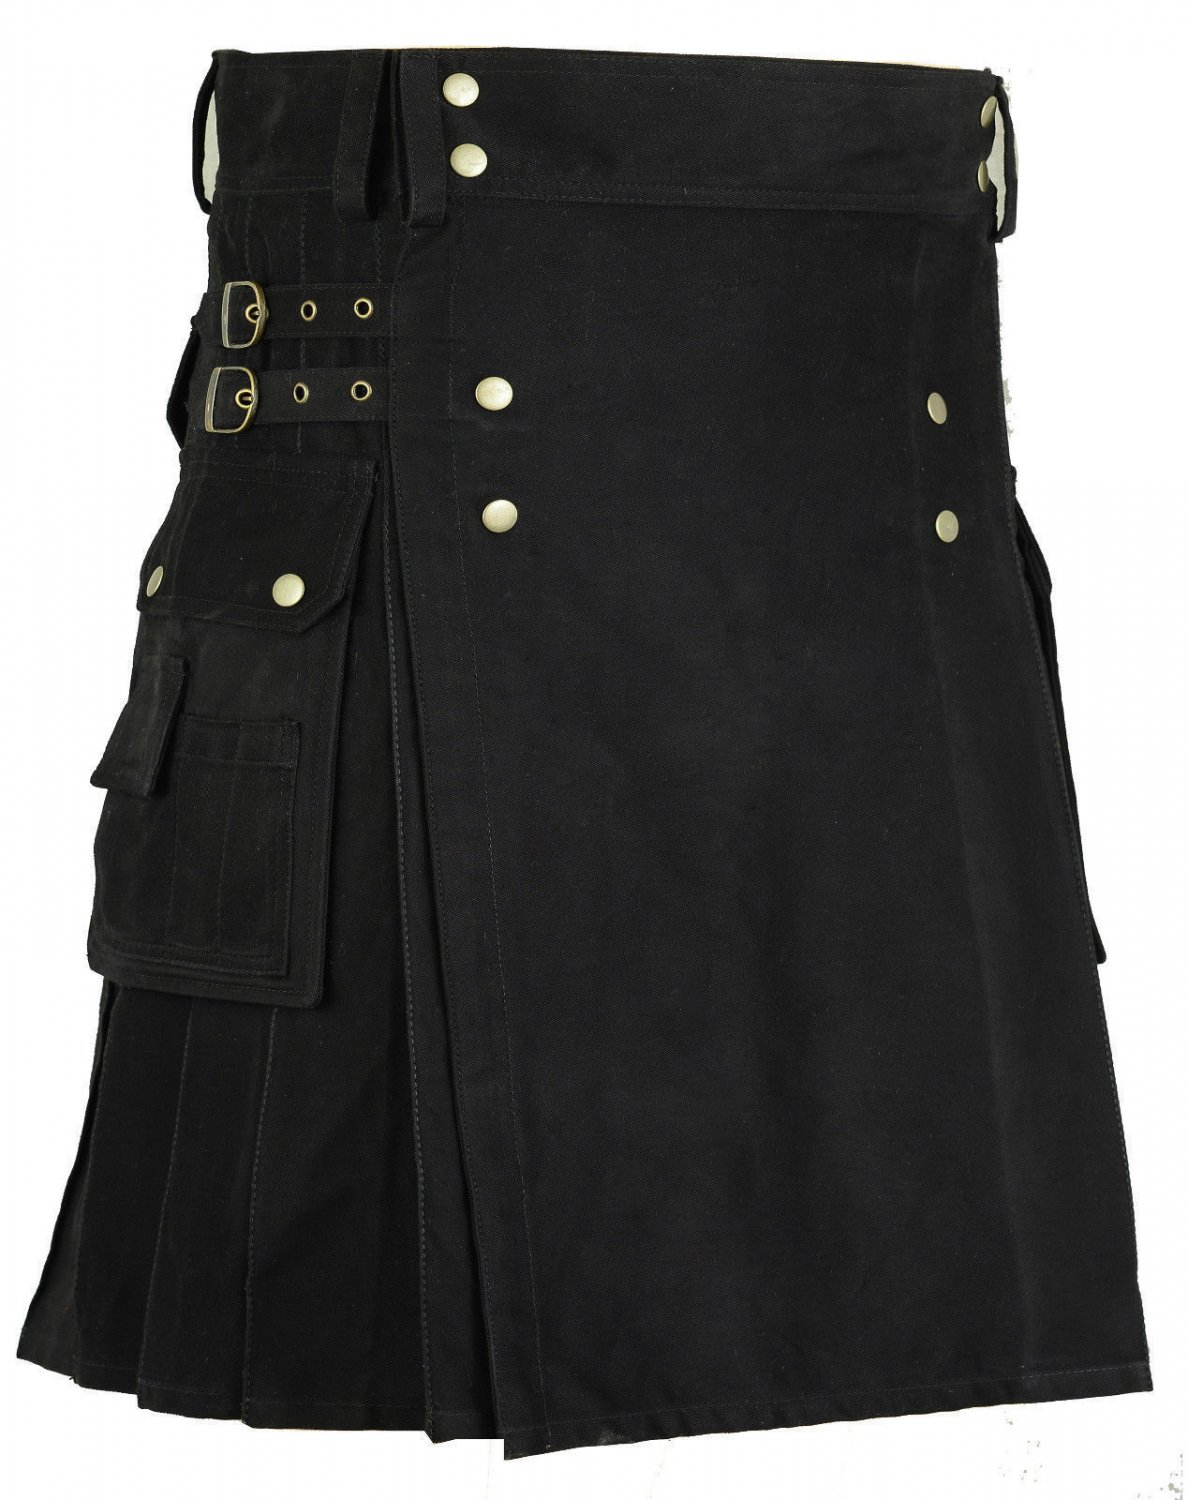 Size 36 New Scottish Cotton Kilt Deluxe Goth Outdoor Utility Kilts Highland Skirt